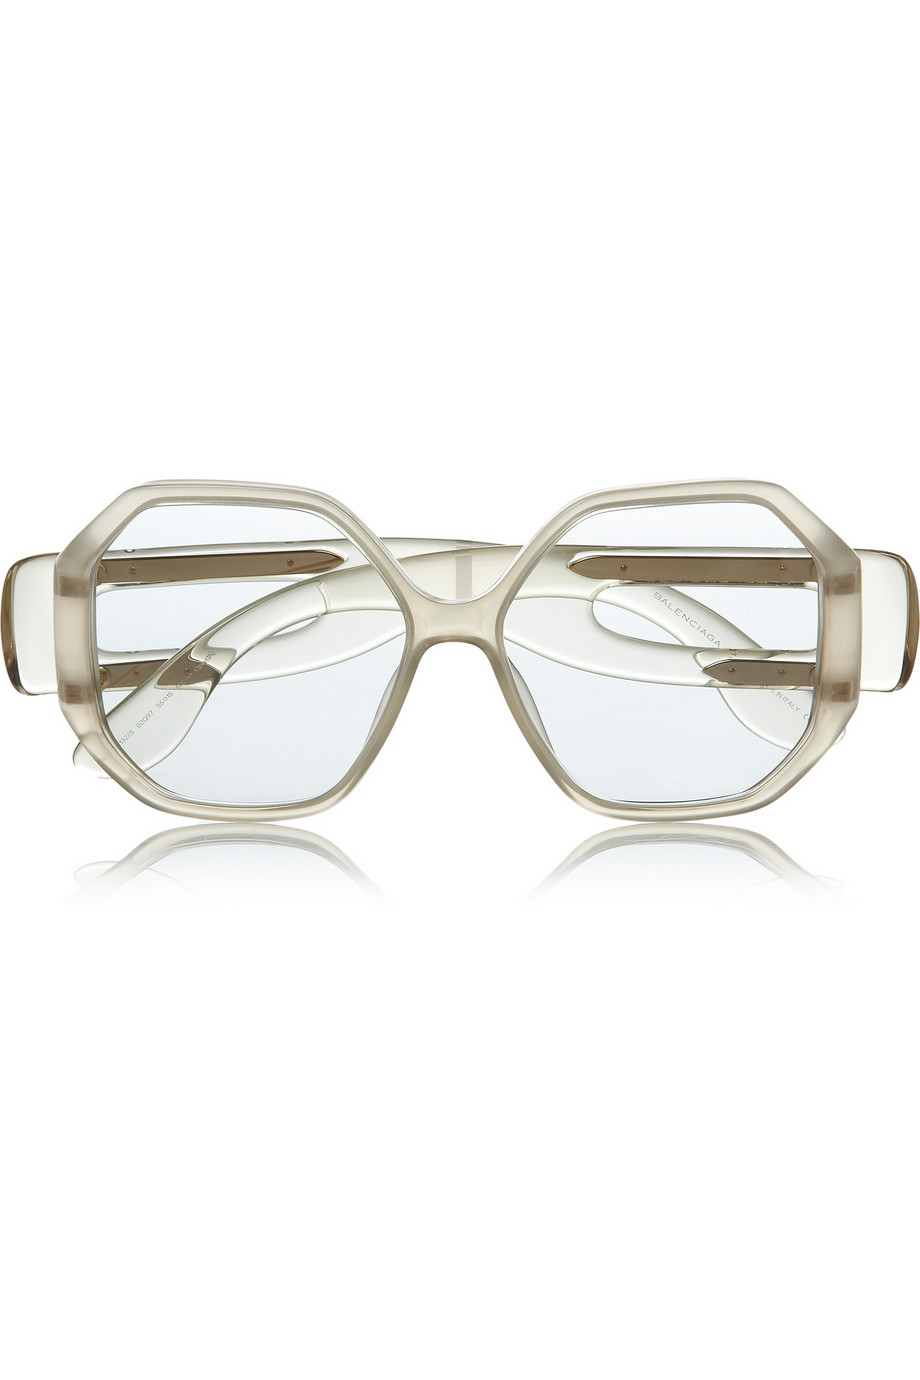 Balenciaga square-frame acetate sunglasses   Original price $451 Now $157.85 THEOUTNET.COM